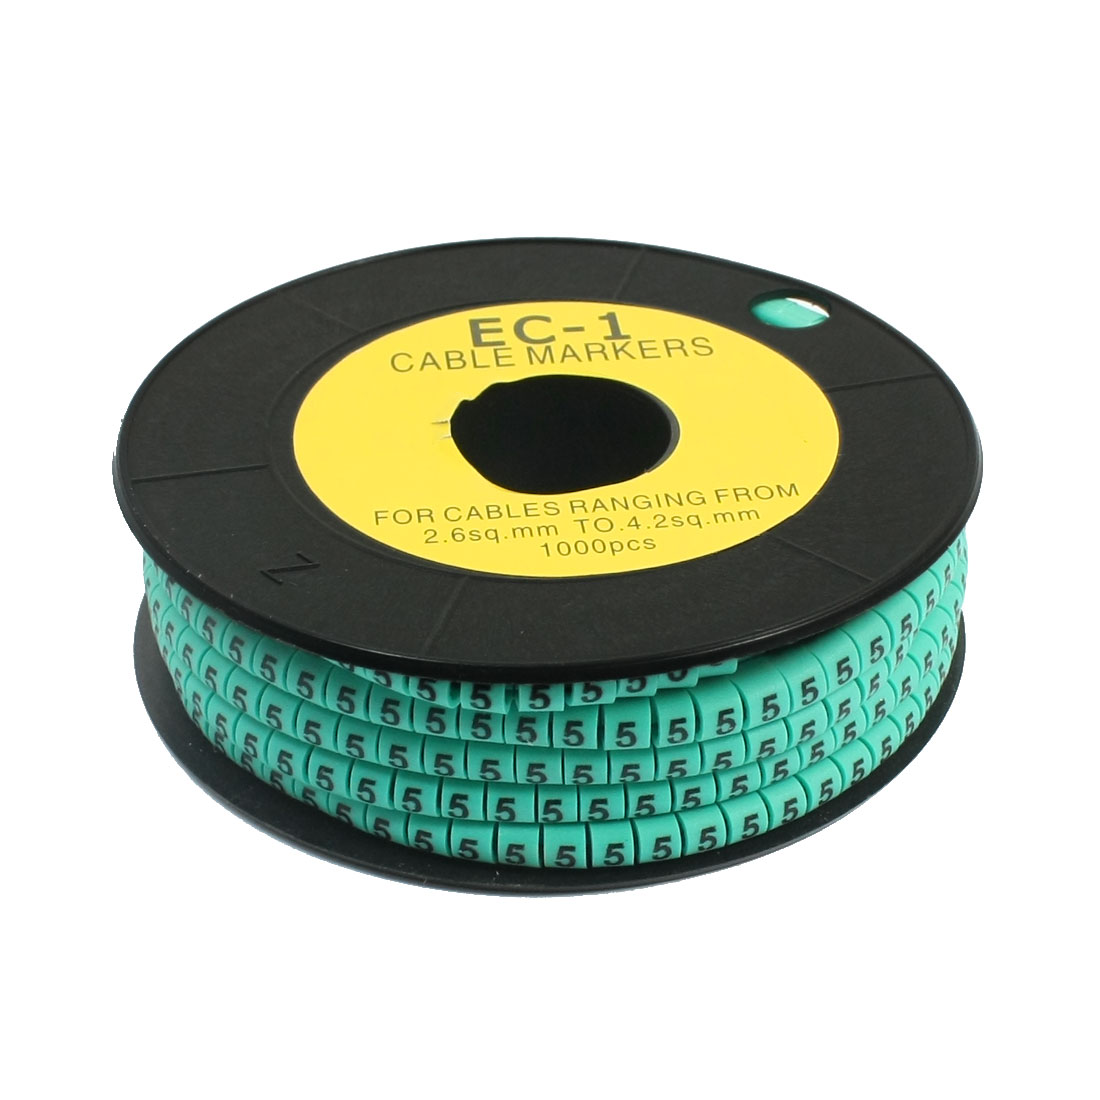 1000pcs Number 5 Printed EC-1 Soft PVC Flexible Cable Markers Green